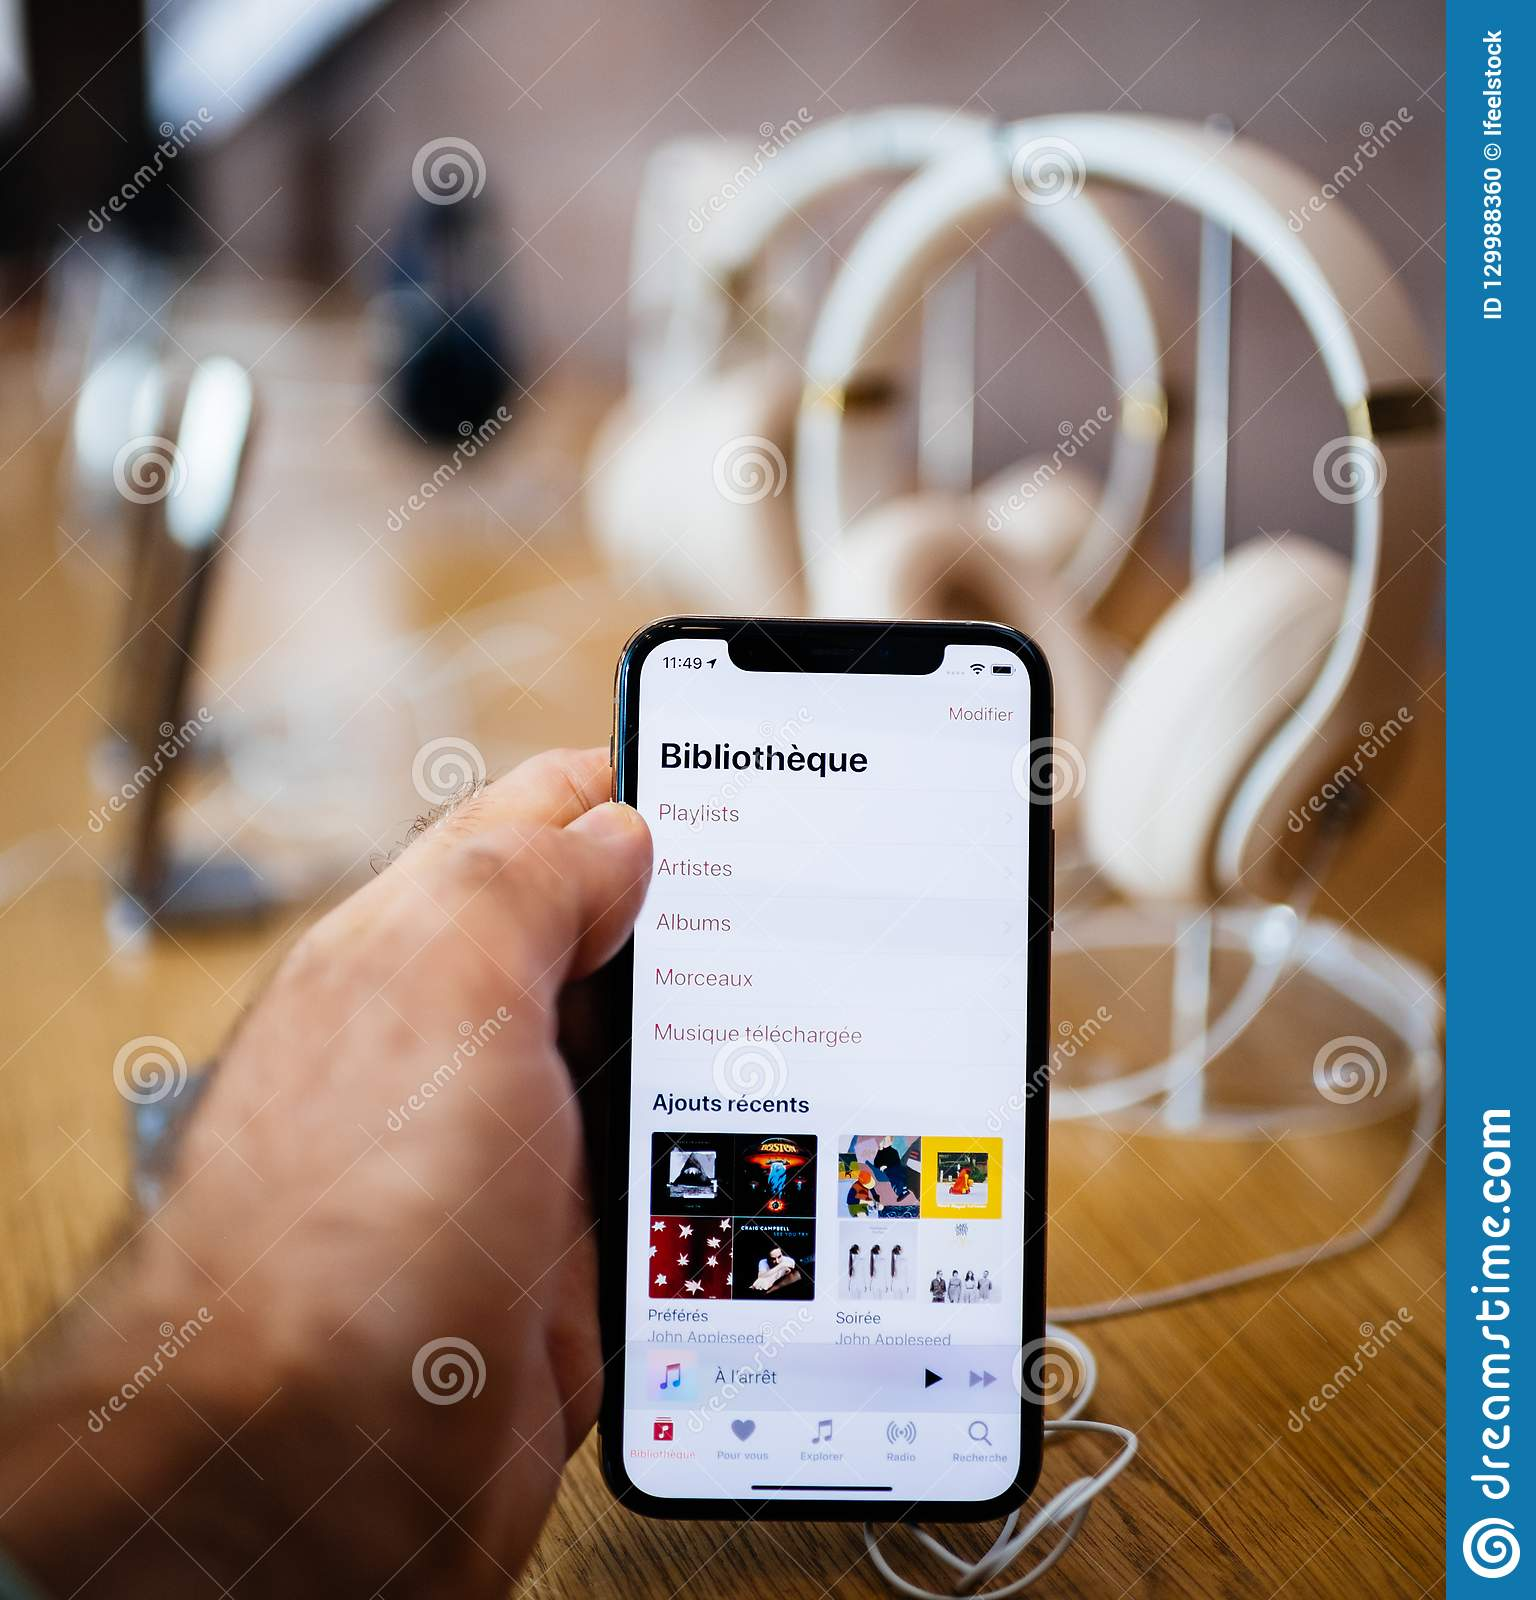 Application iphone bibliotheque